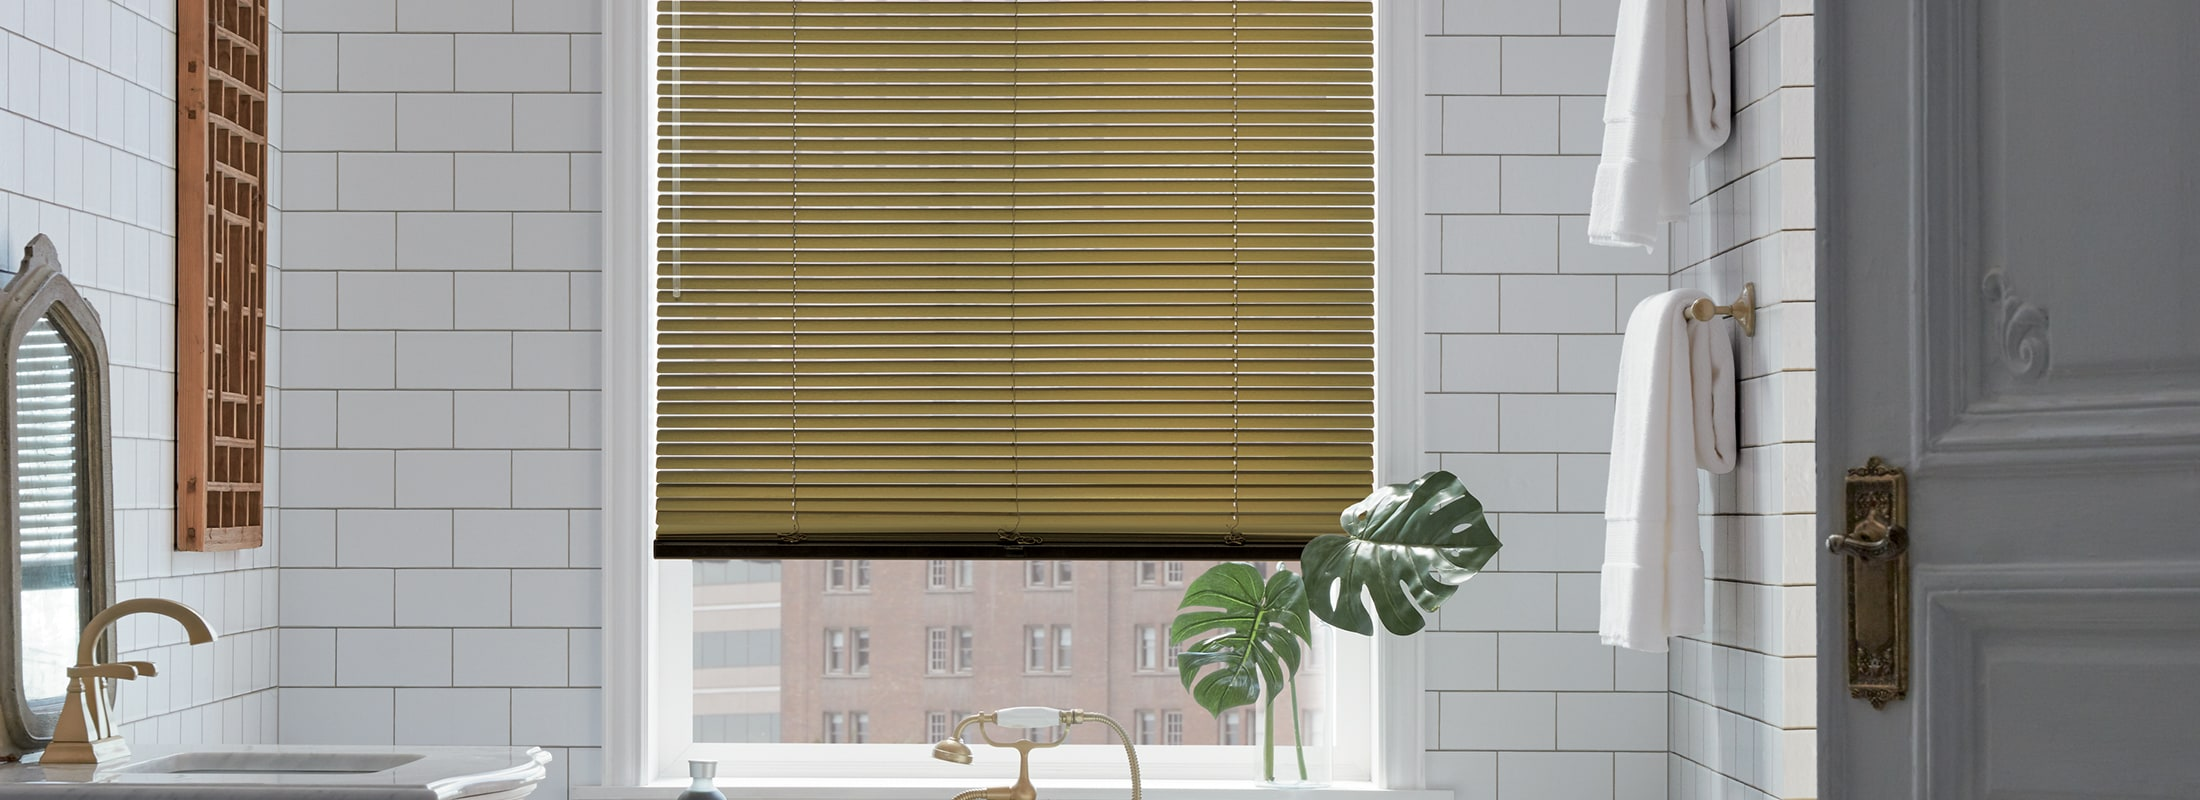 Horizontal Aluminum Blinds in Décor Aluminum Vintage Gold Brushed - Modern Precious Metals